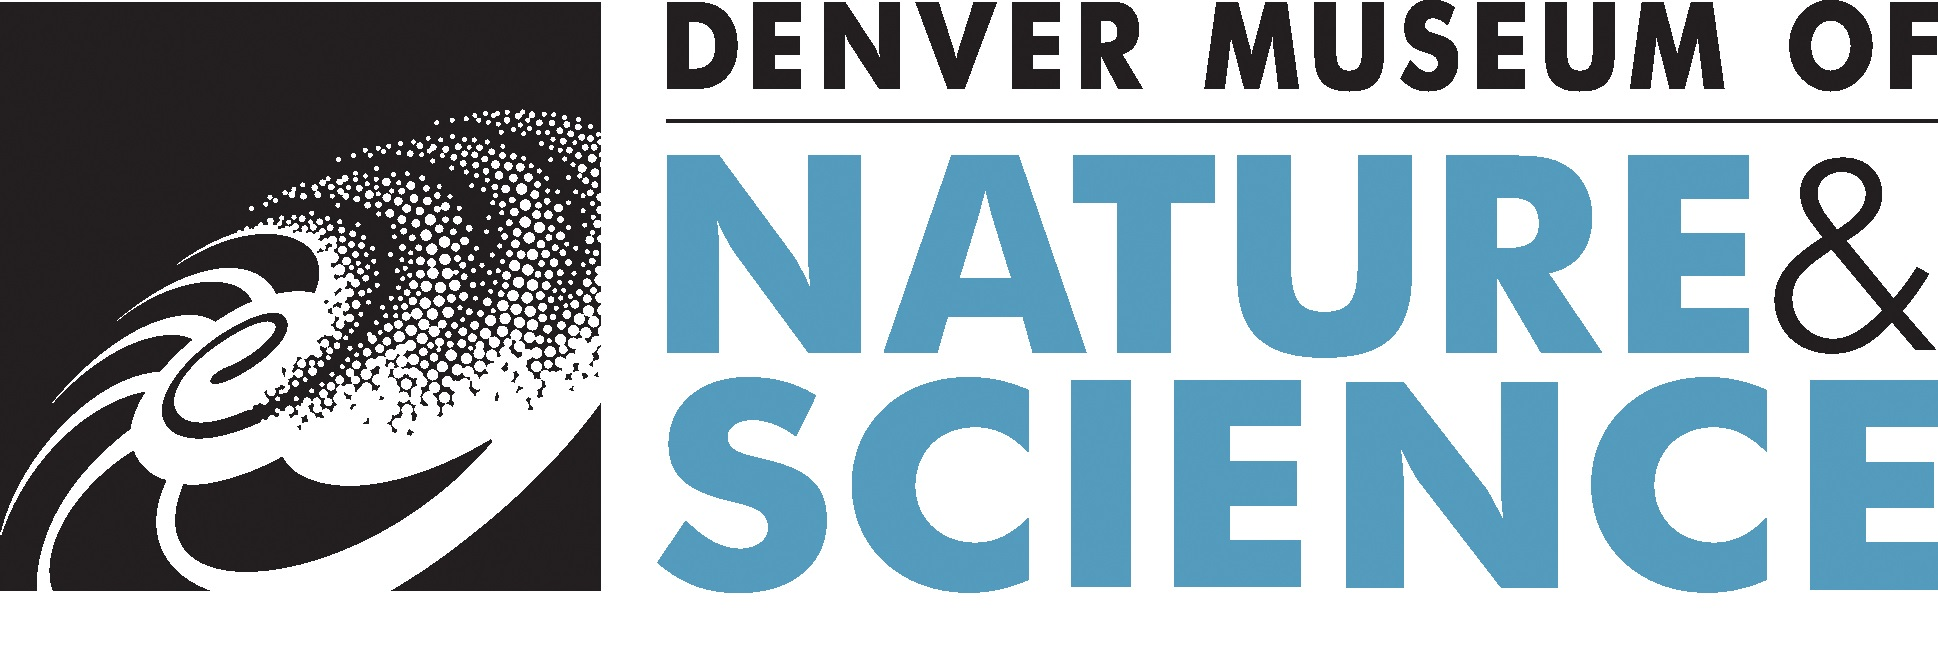 Denver Museum of Nature and Science logo